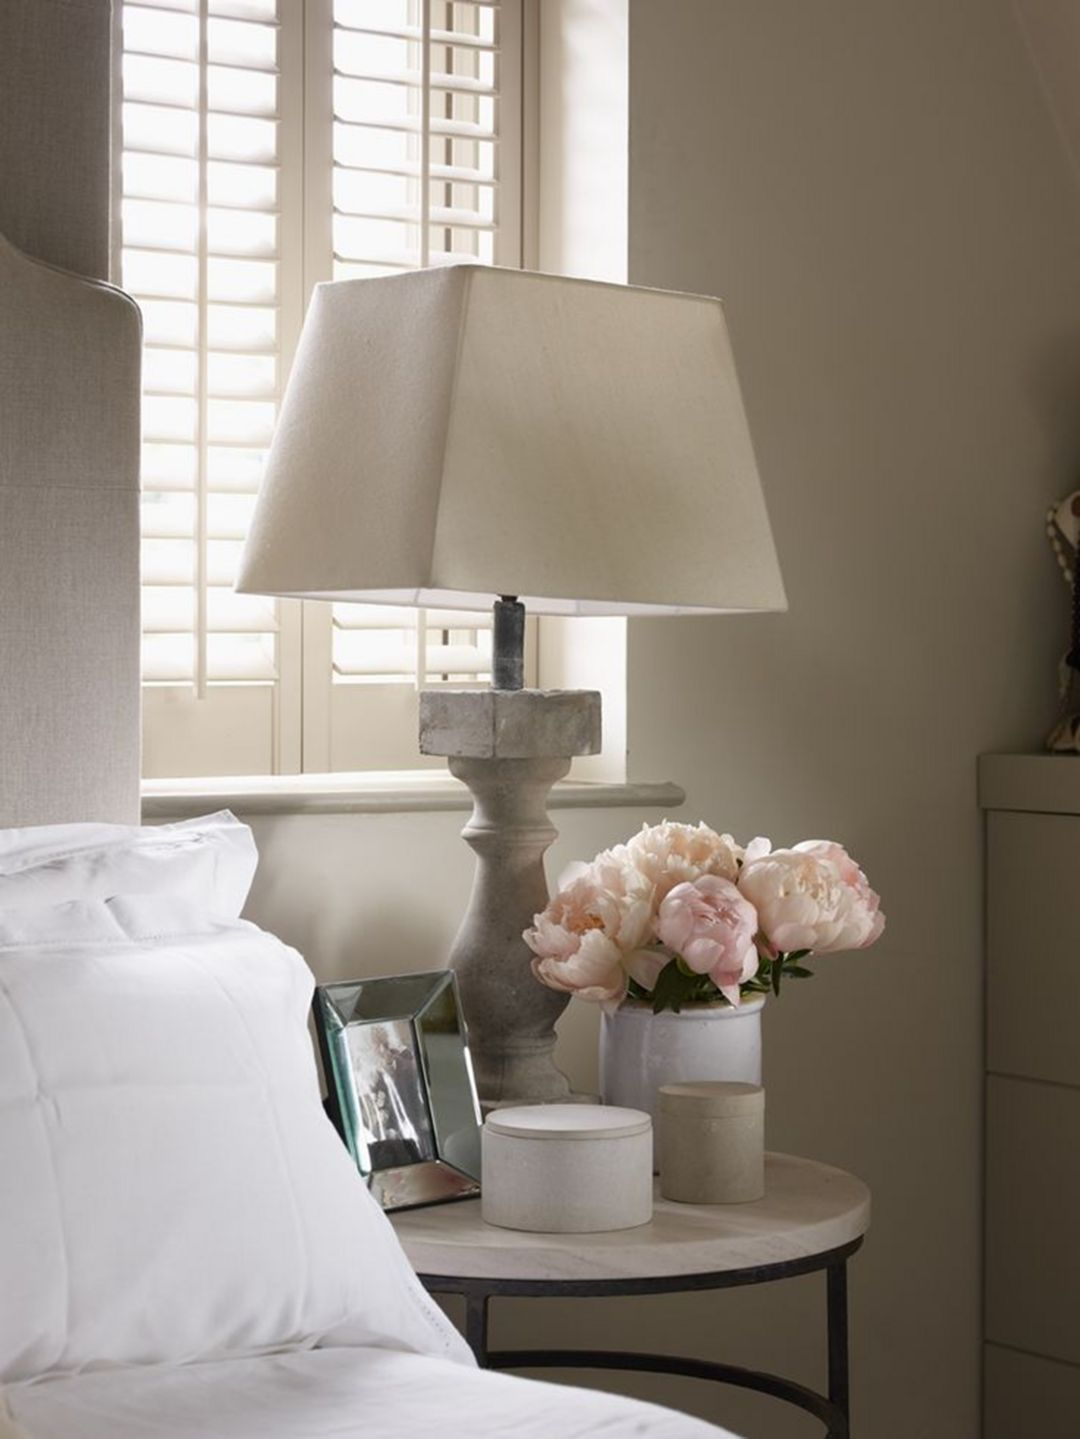 12 Awesome Bedside Table Lamps Ideas Decor It S Nightstand Decor Home Transitional Living Rooms